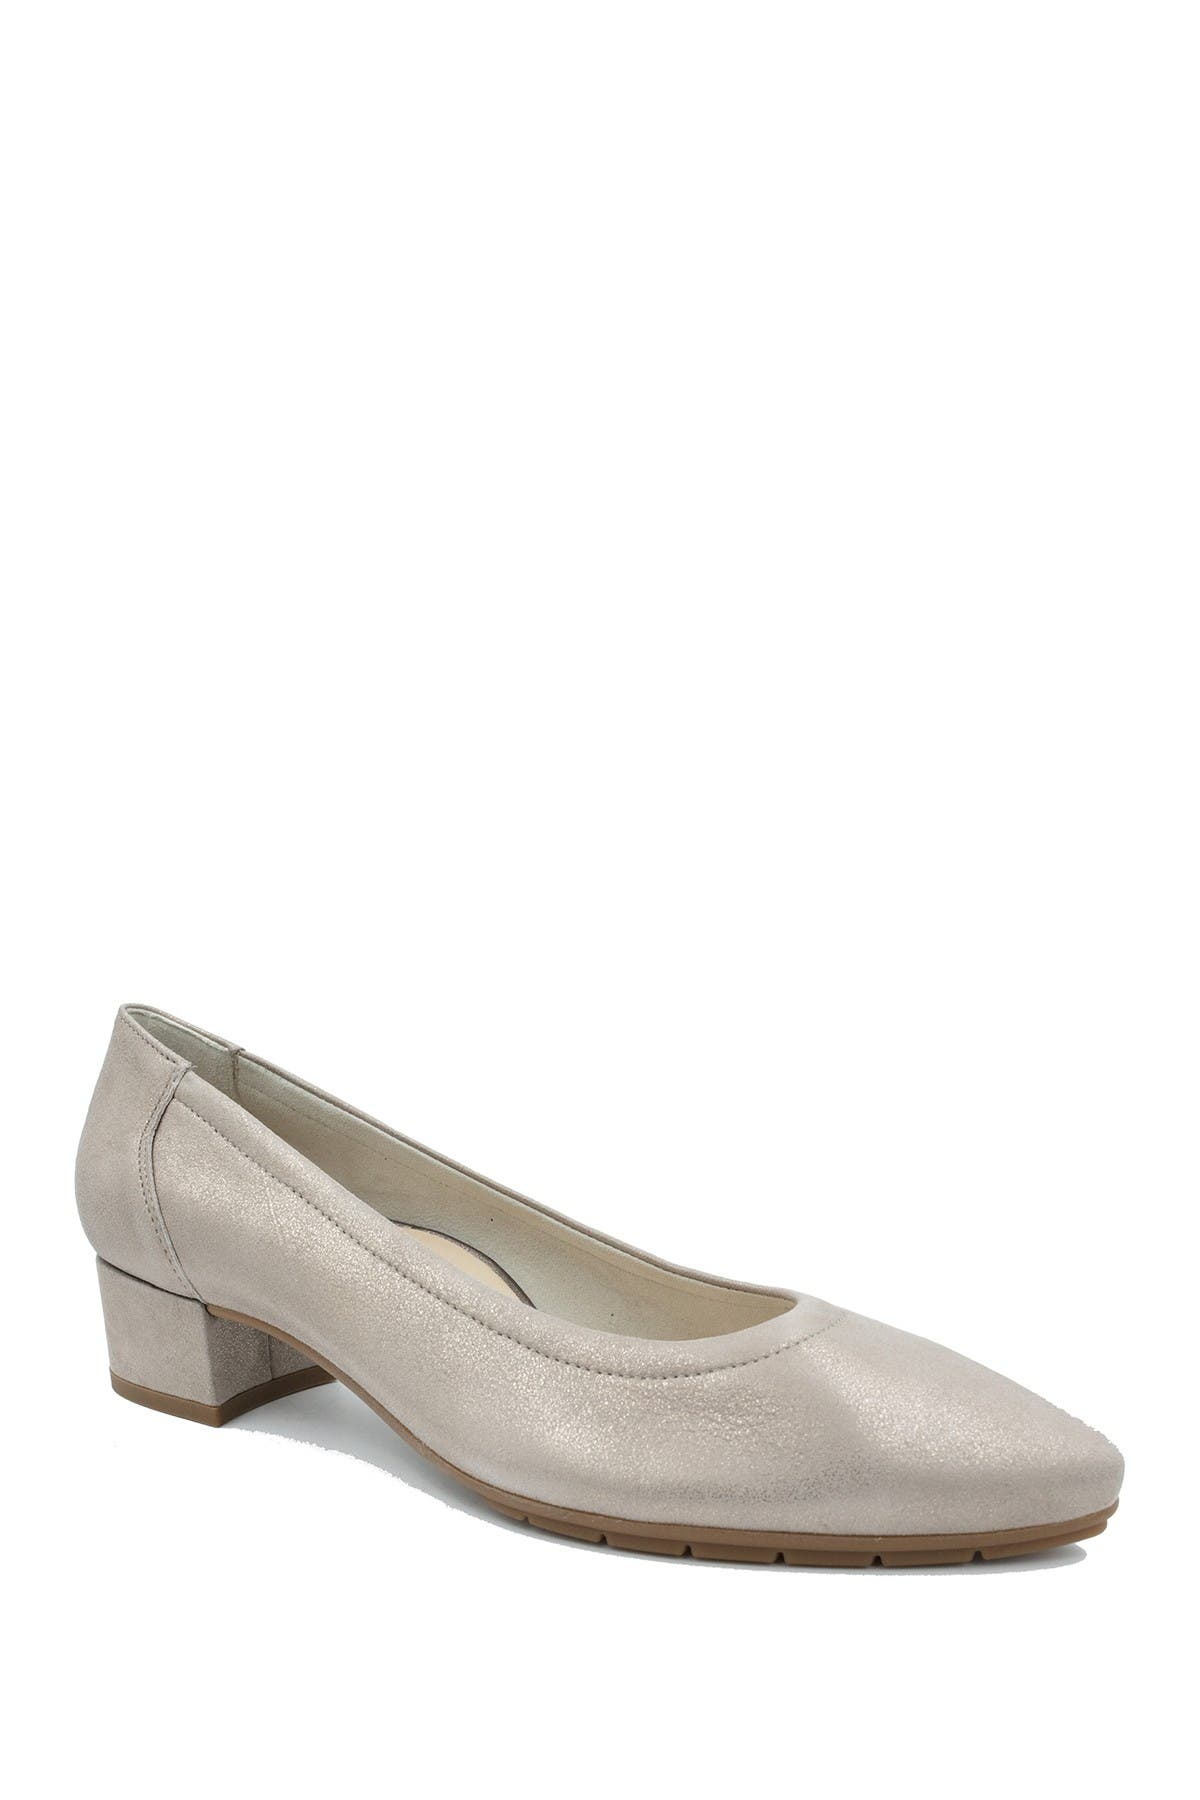 Image of Paul Green Cozette Suede Pointed Toe Pump